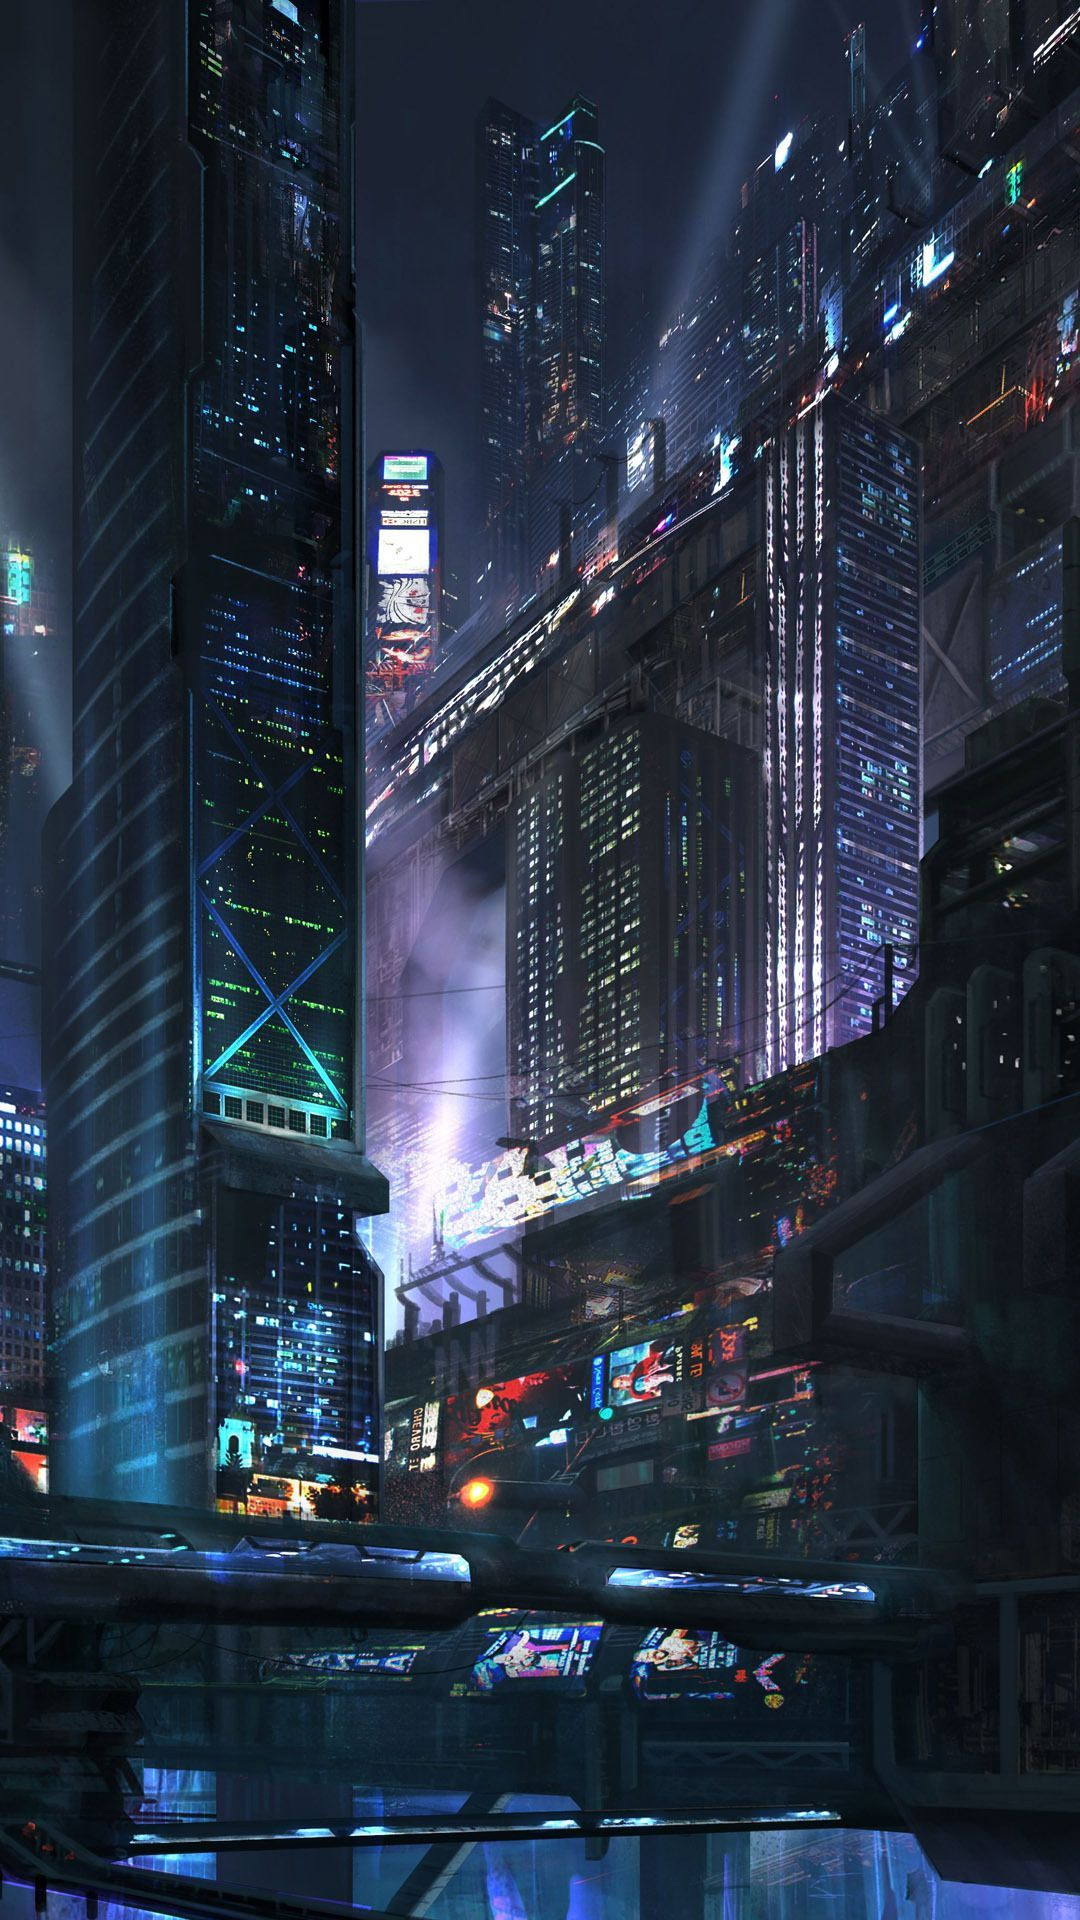 Japan Reddit Wallpaper Download In 2020 Futuristic City Cyberpunk City Futuristic Art